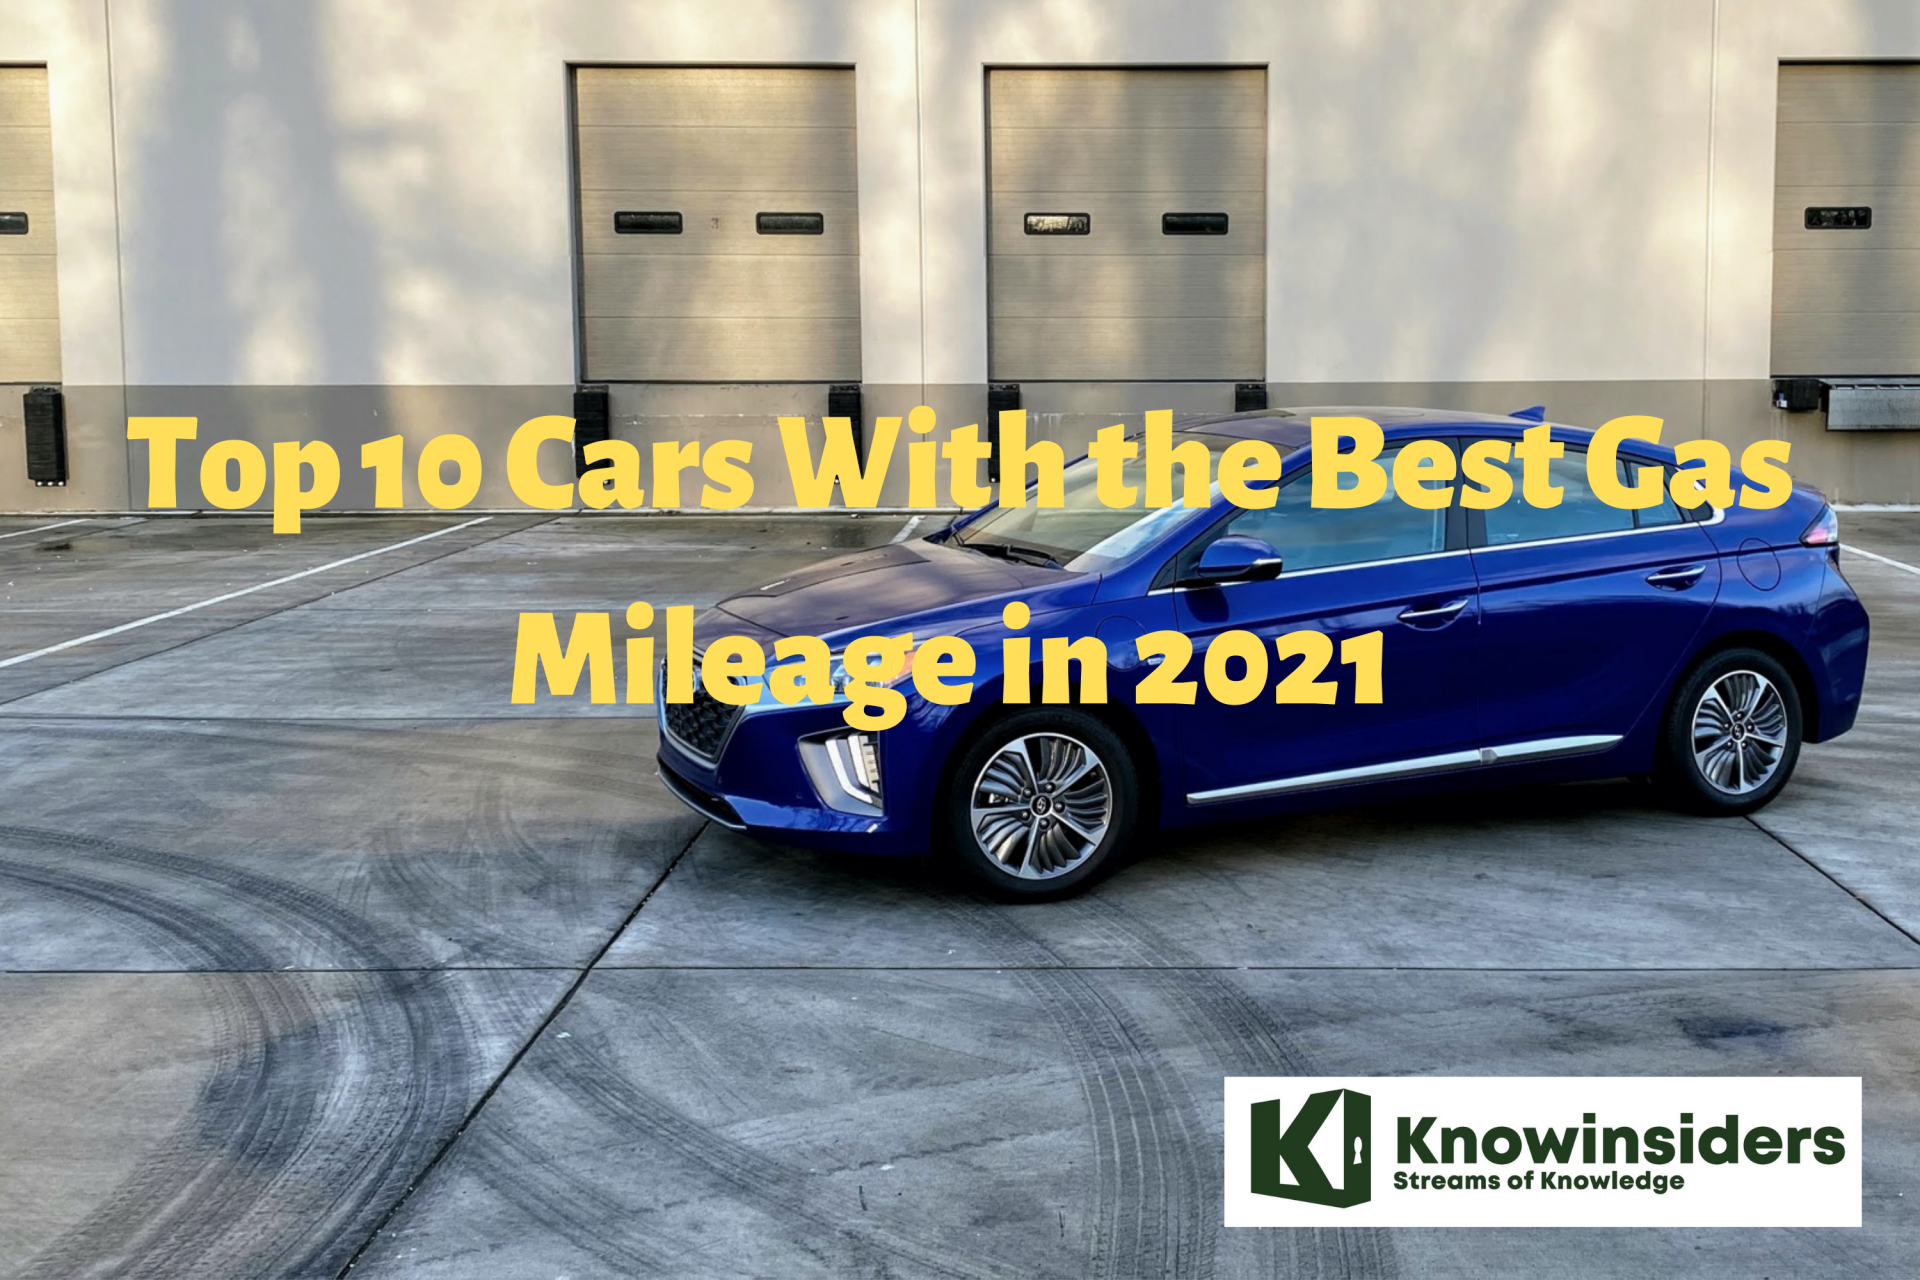 Top 10 Cars - Best Gas Mileage